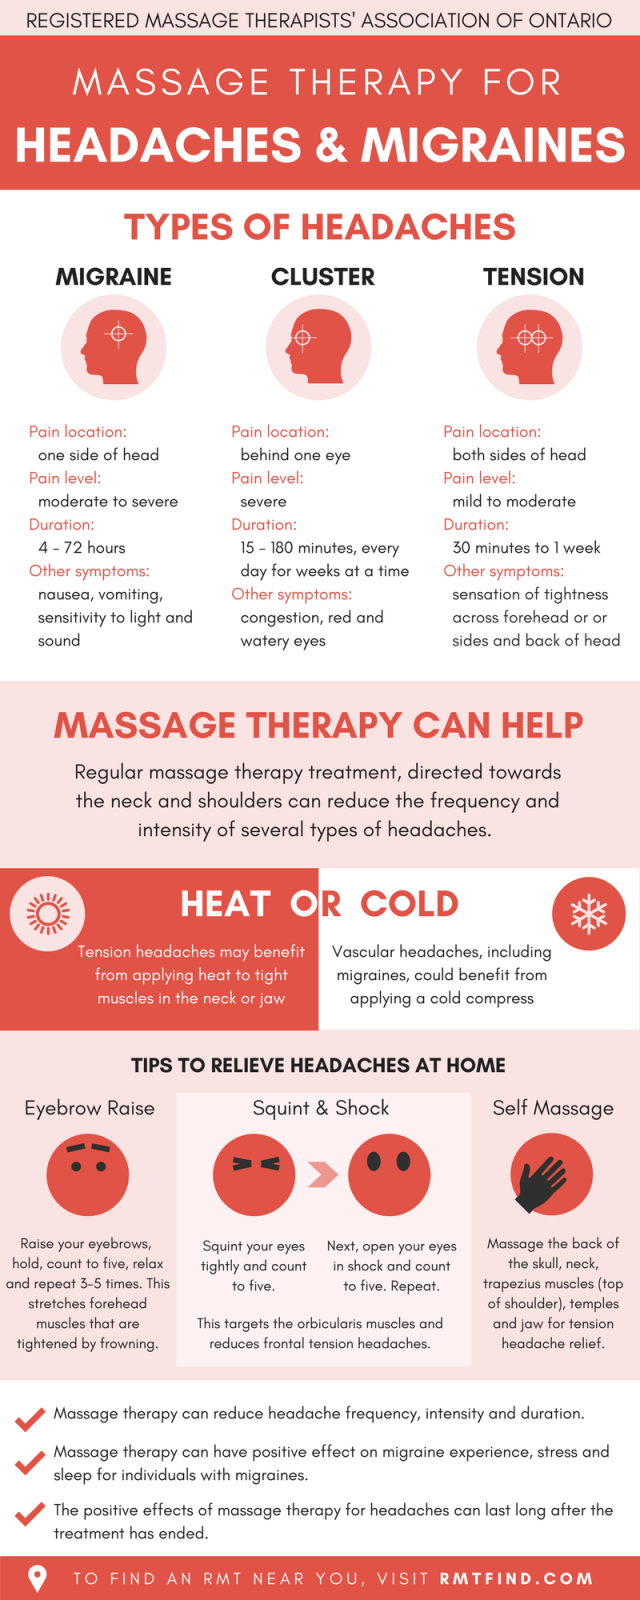 massage therapy for Migraine